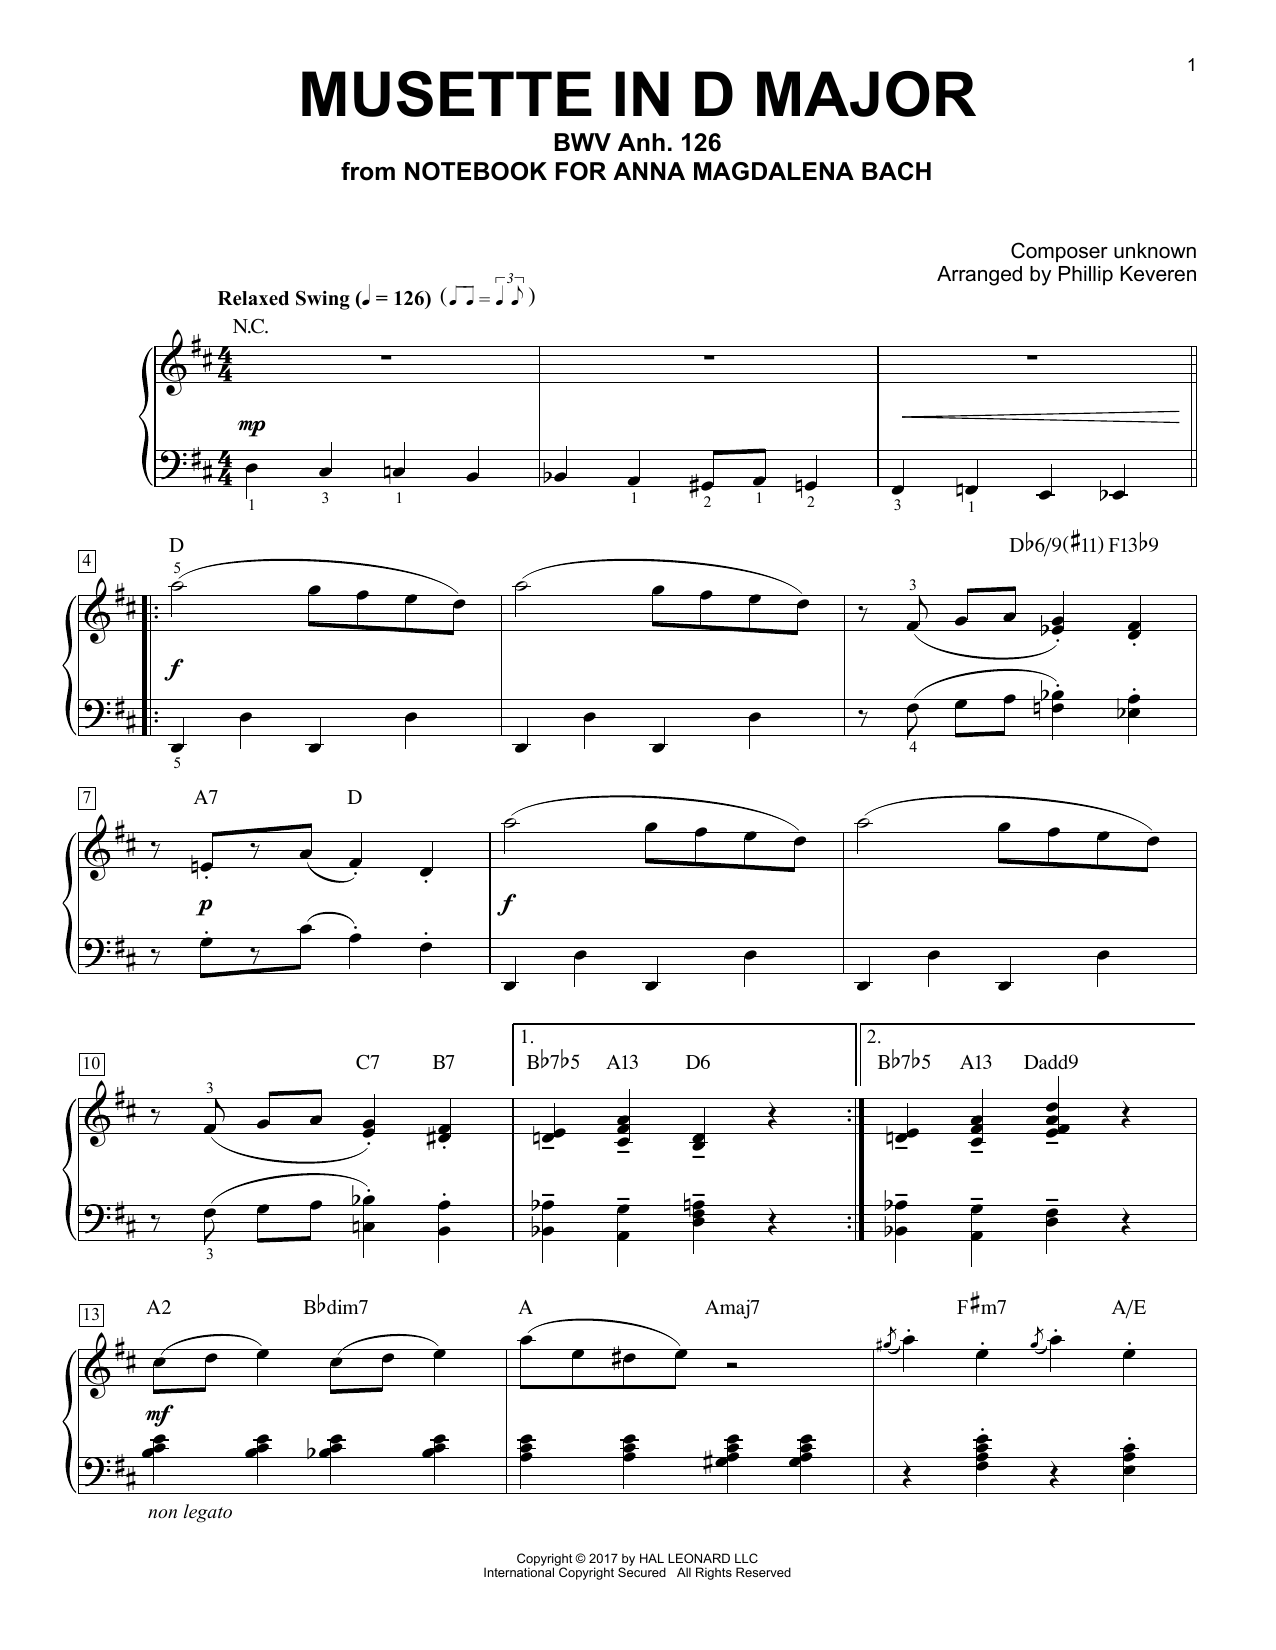 Download Phillip Keveren 'Musette In D Major, BWV Anh. 126' Digital Sheet Music Notes & Chords and start playing in minutes